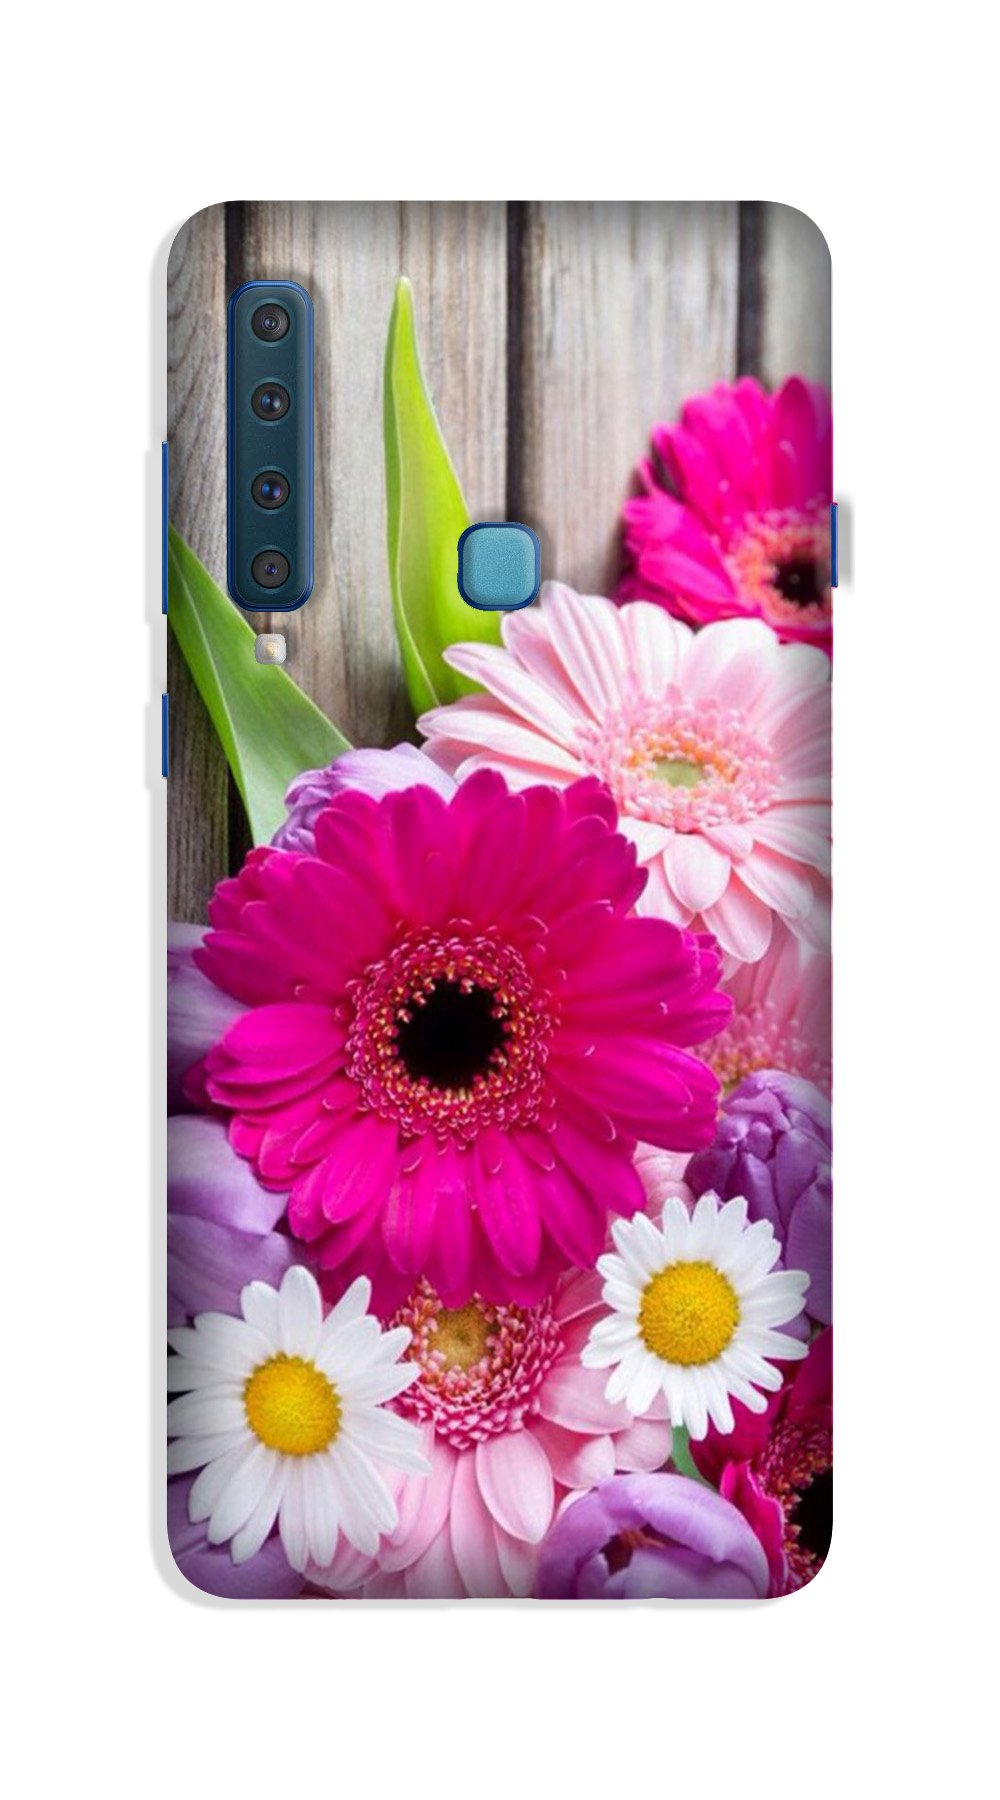 Coloful Daisy2 Case for Galaxy A9 (2018)